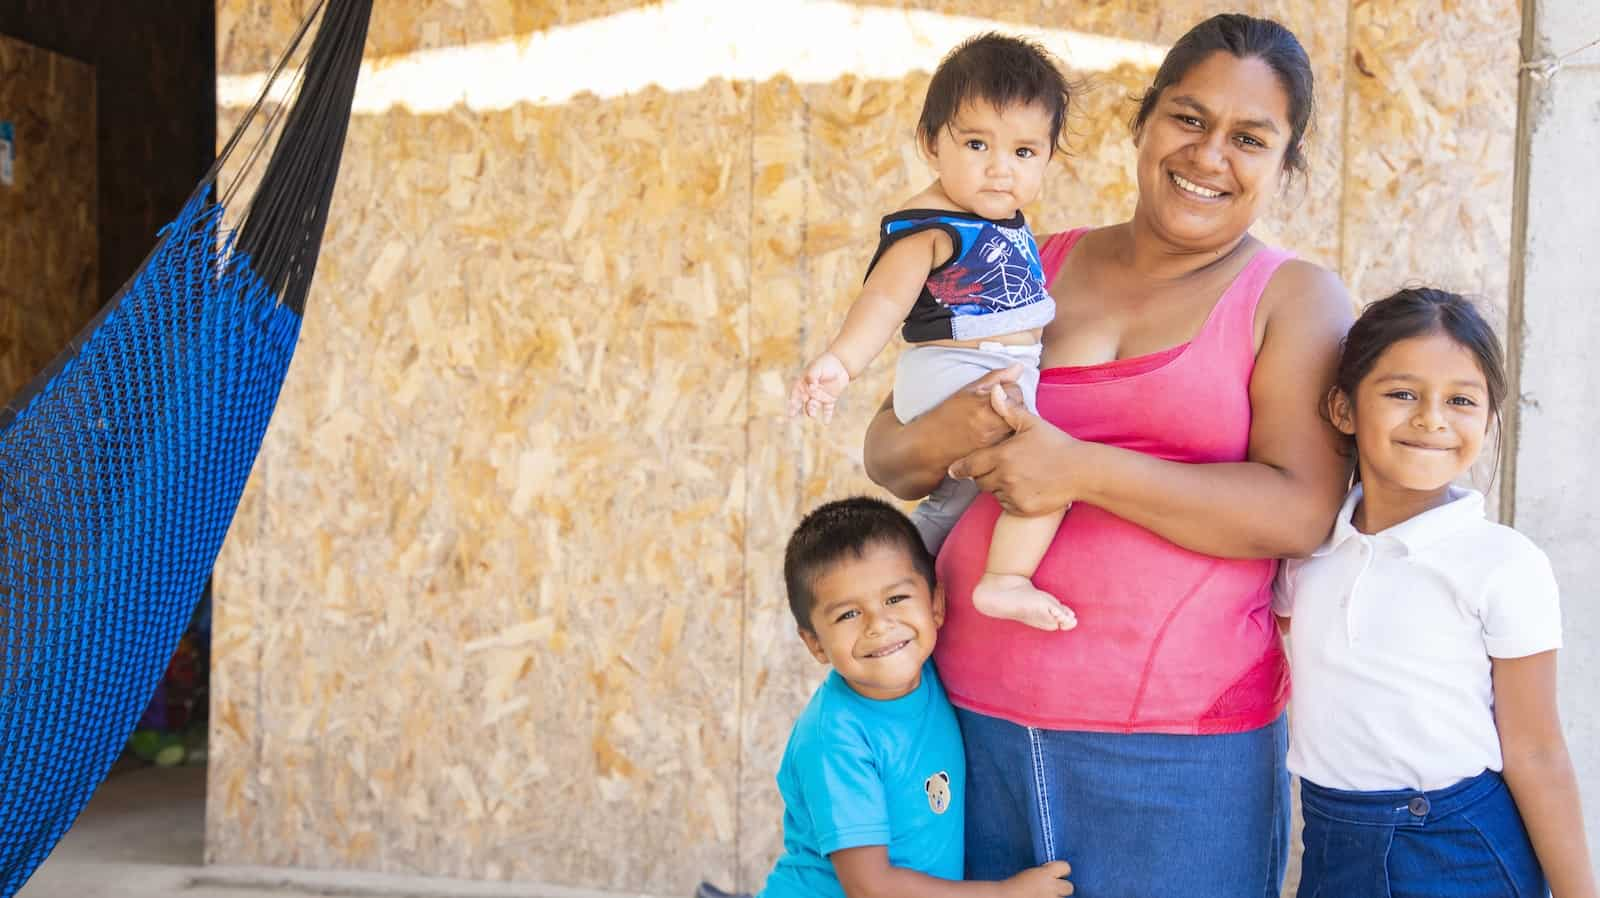 A woman in a pink tank-top holds a baby, with two young children standing at her sides, smiling.